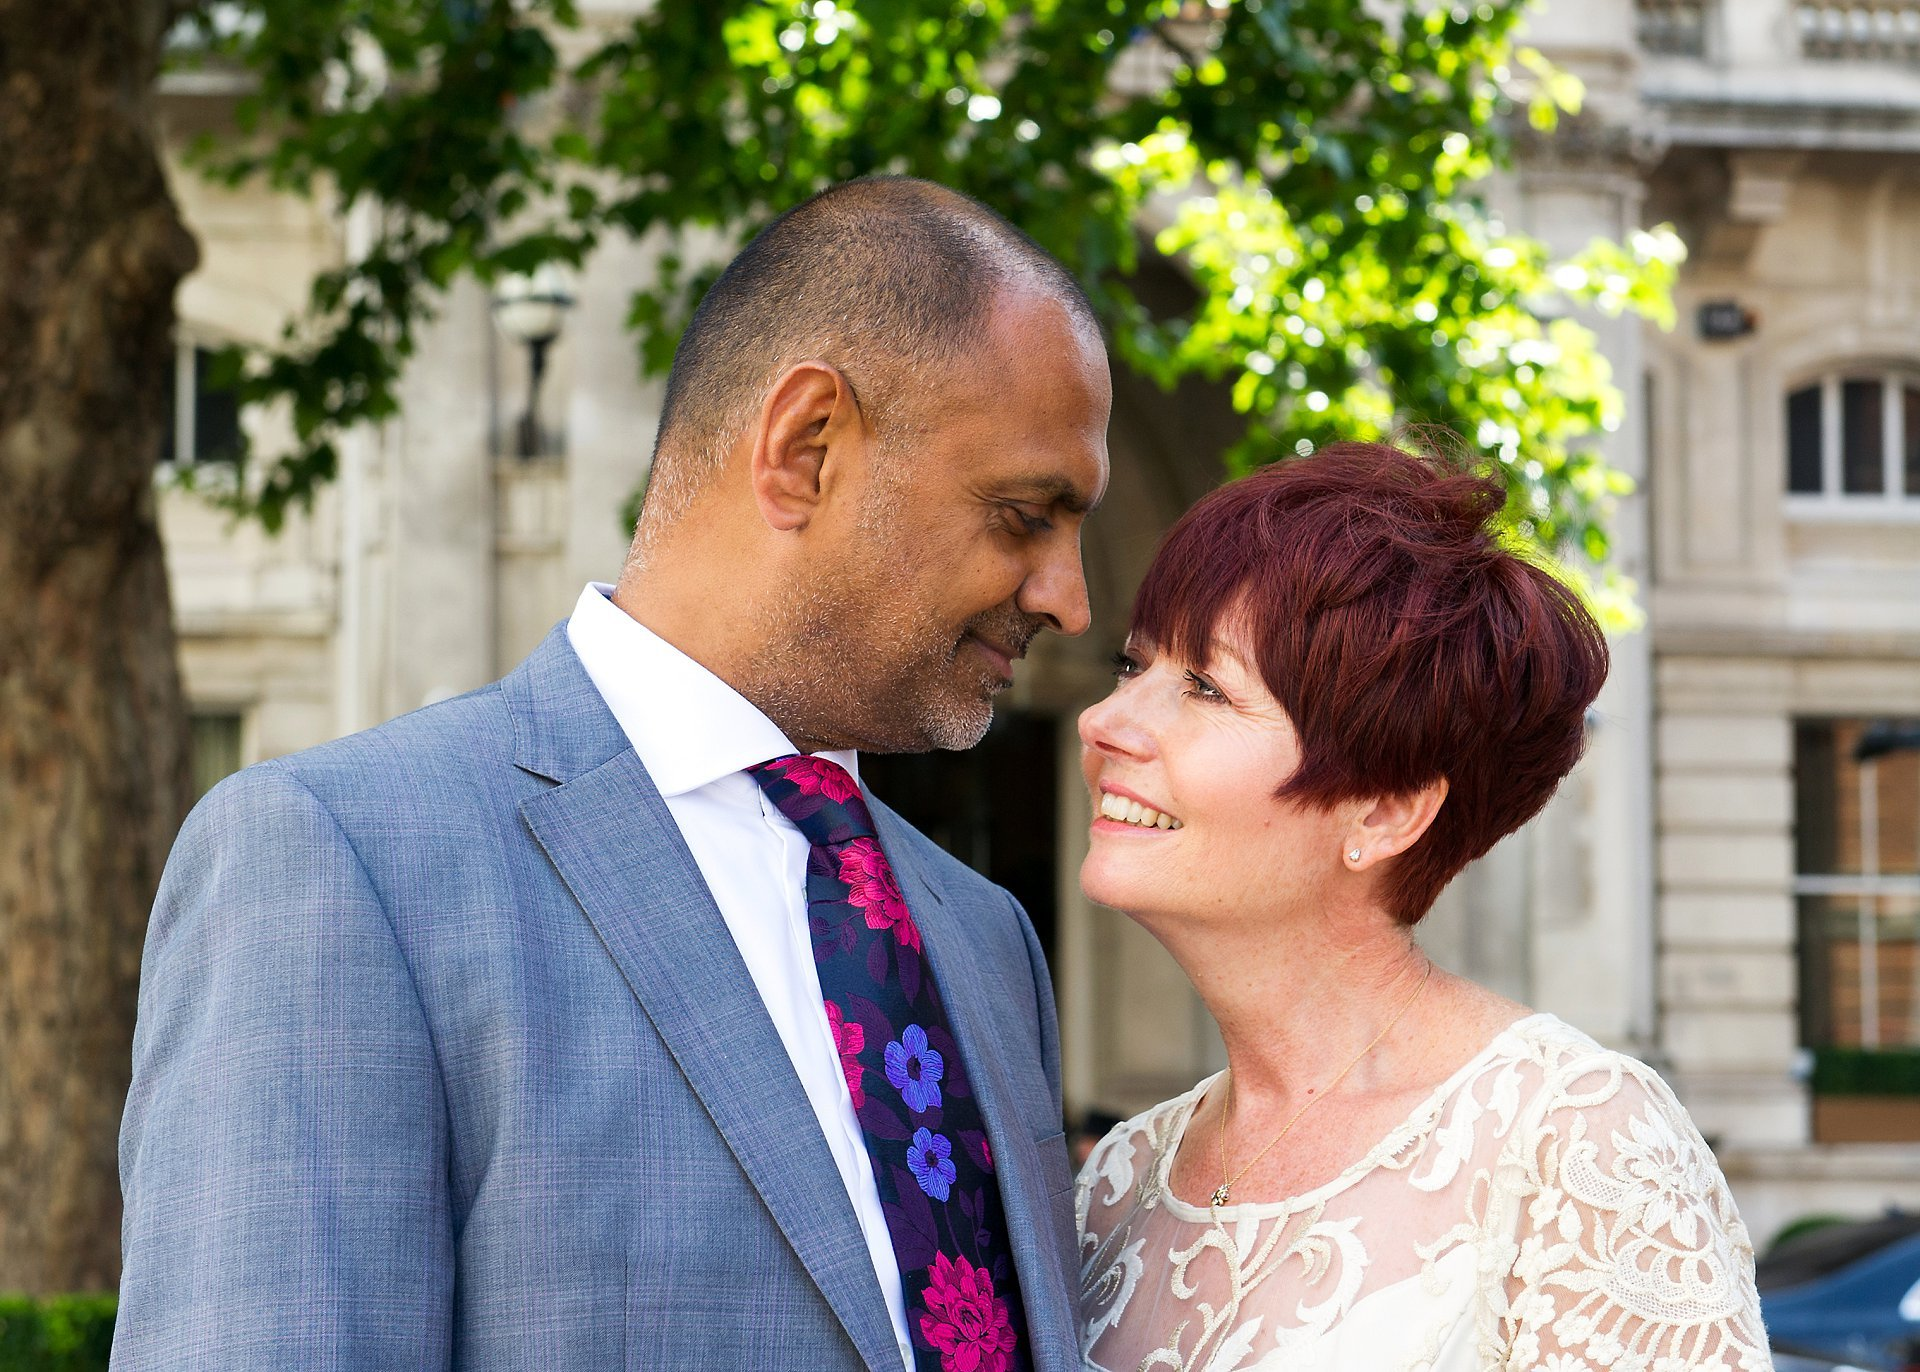 langham wedding reception in the heart of London's West End is a famous 5 star Marylebone hotel and has numerous restaurants in which to celebrate your wedding lunch, tea or dinner. Meb adn Lorraine chose the Roux at The Landau Restaurant